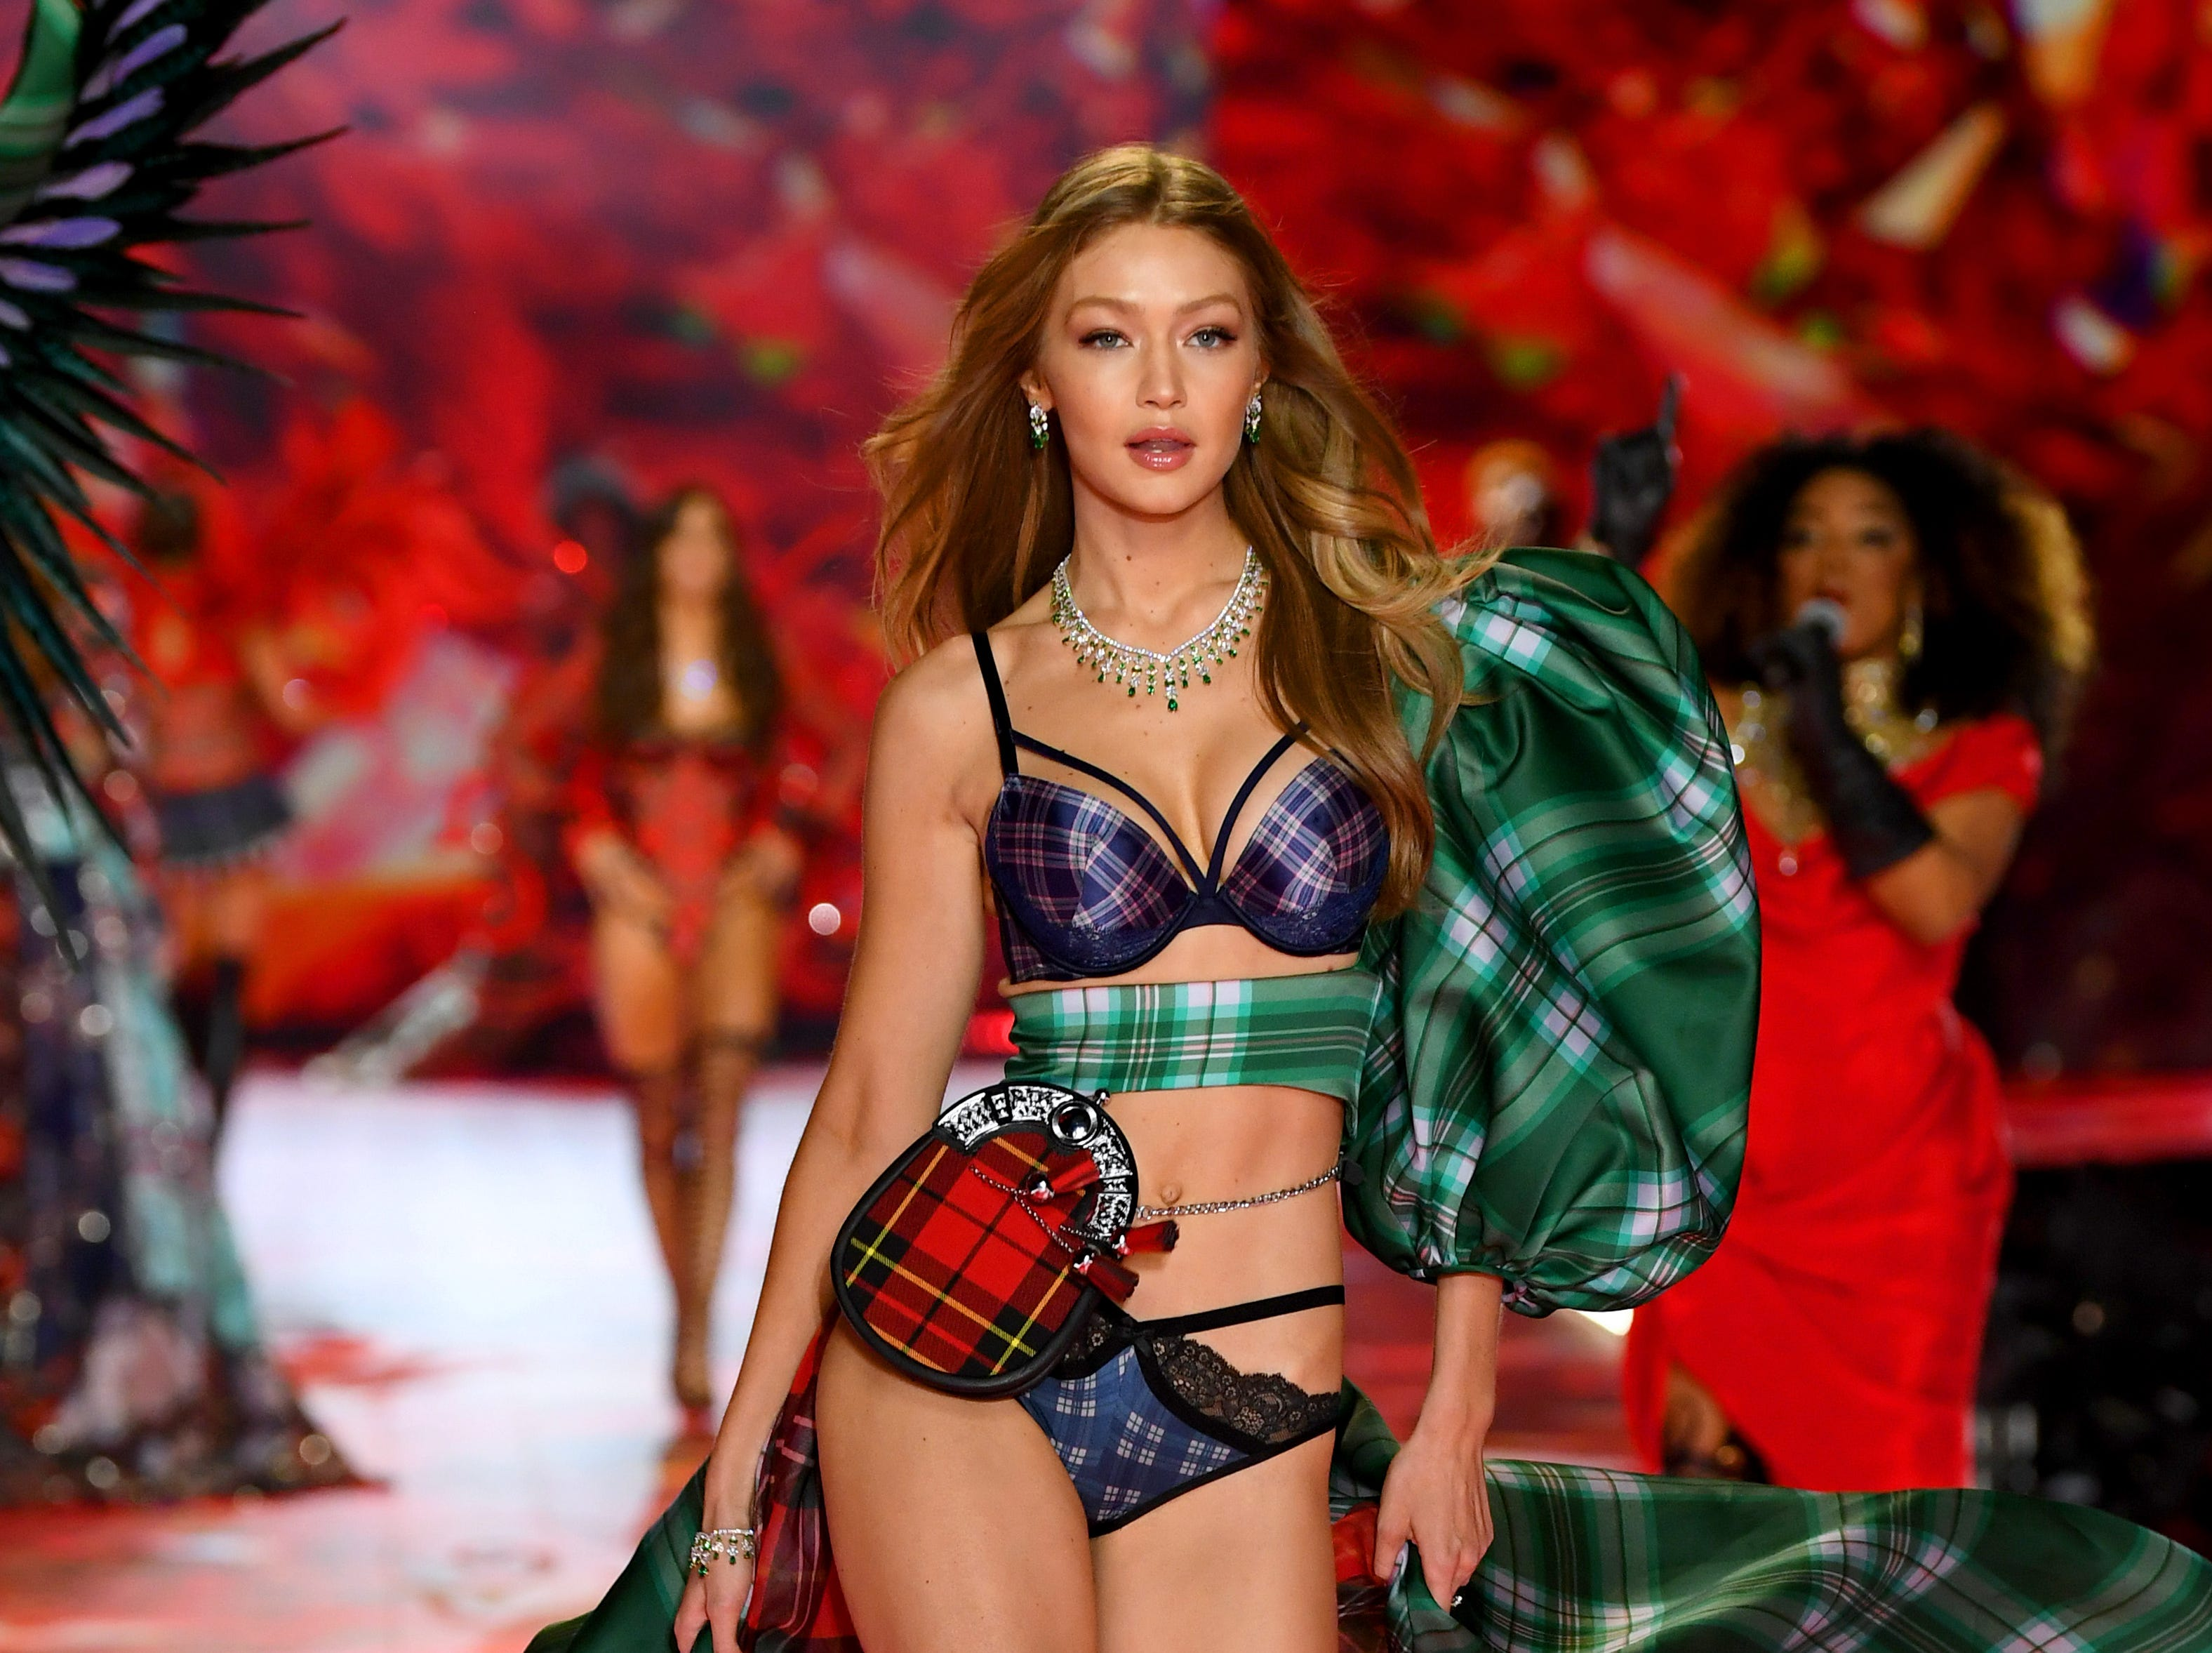 NEW YORK, NY - NOVEMBER 08:  Gigi Hadid walks the runway during the 2018 Victoria's Secret Fashion Show at Pier 94 on November 8, 2018 in New York City.  (Photo by Dimitrios Kambouris/Getty Images for Victoria's Secret) ORG XMIT: 775252749 ORIG FILE ID: 1059371098